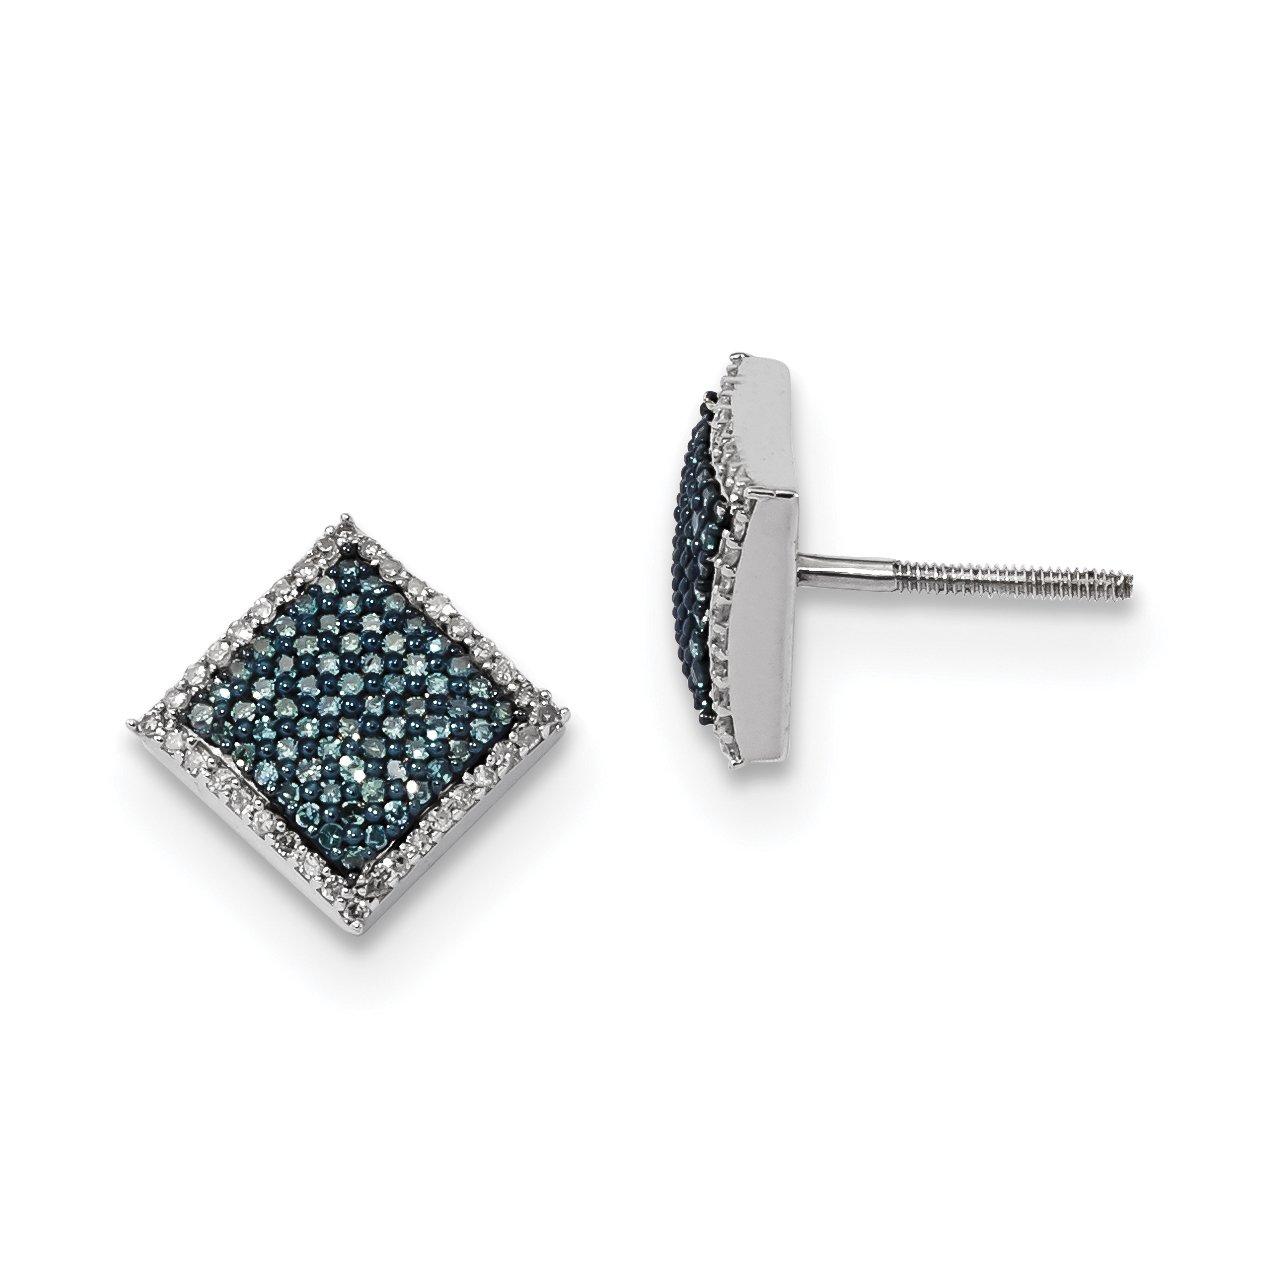 ICE CARATS 925 Sterling Silver Blue White Diamond Square Post Stud Ball Button Earrings Fine Jewelry Gift Set For Women Heart